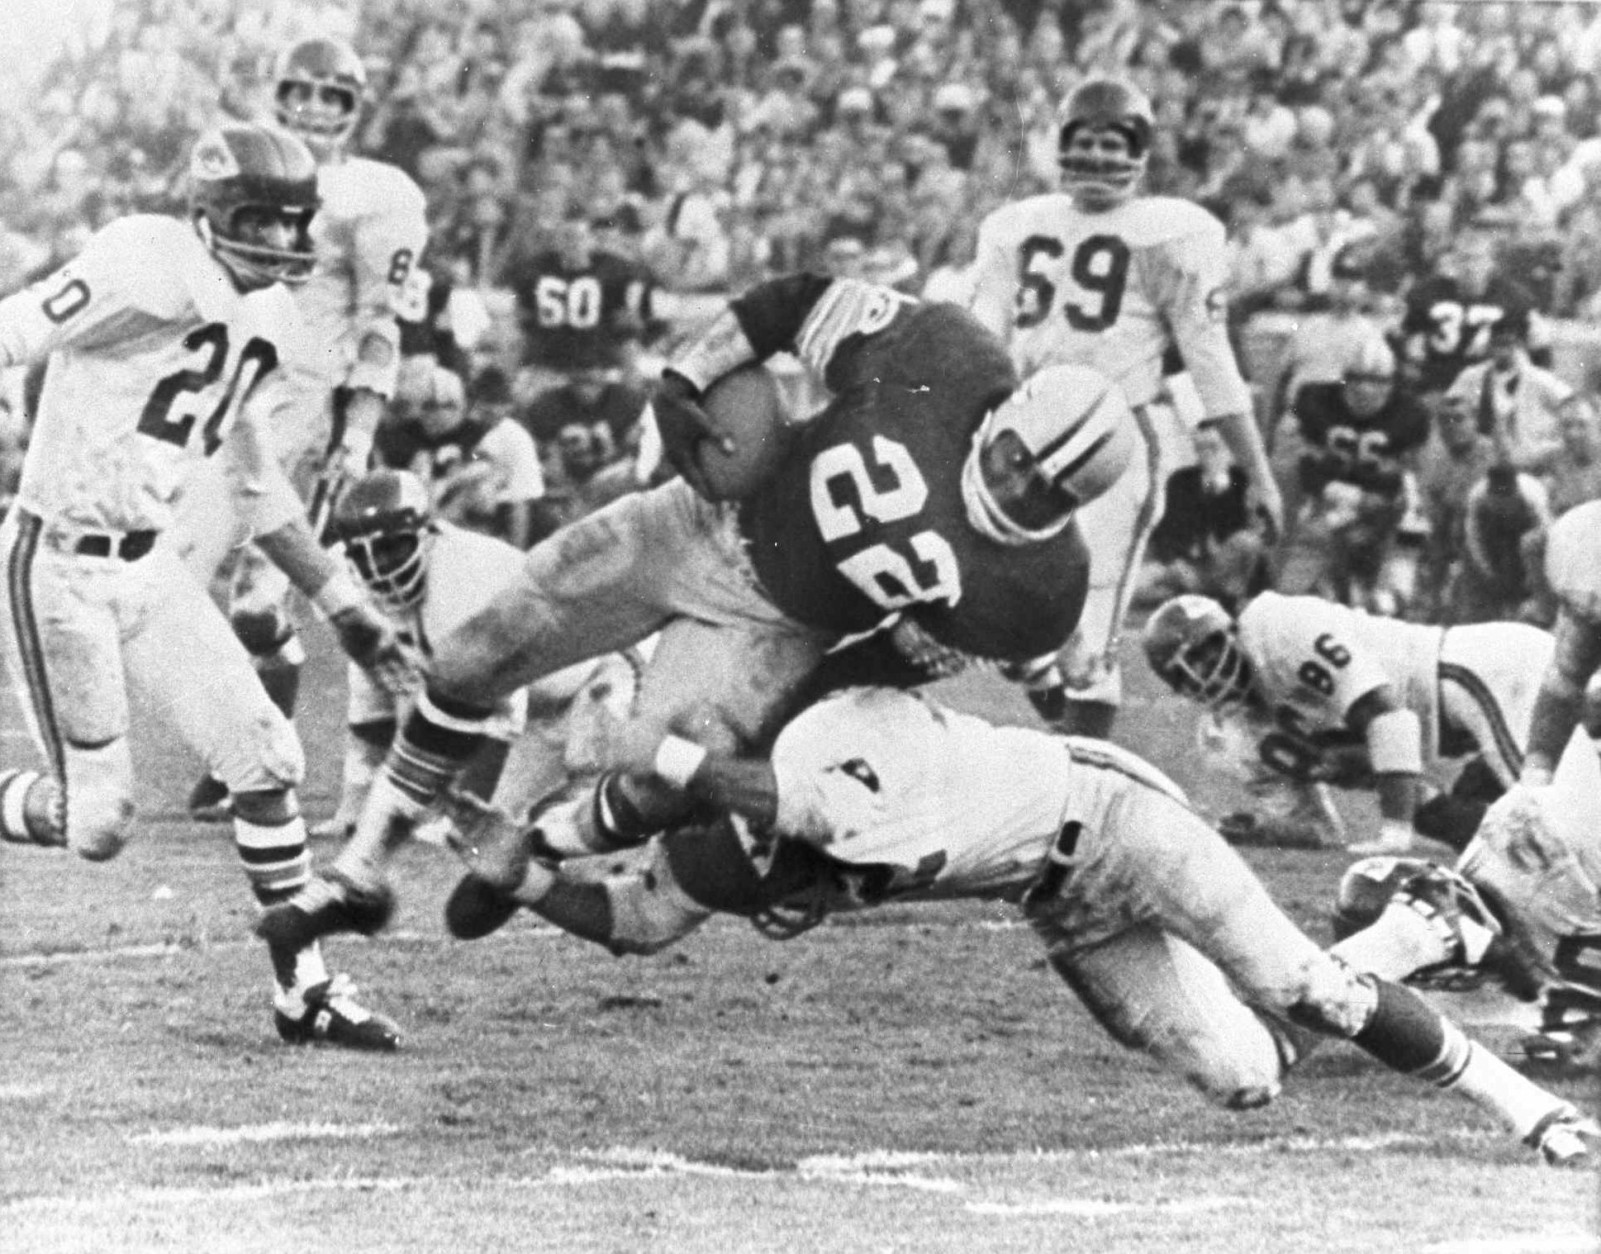 The Packers' Klijah Pitts (22) goes over right tackle to the Chiefs' five-yard line, a six-yard gain, before being brought down by Kansas City's Johnny Robinson in the fourth quarter of the Super Bowl game in Los Angeles Jan. 15, 1967.  Three plays later Pitts went over for the touchdown as the Packers beat the Chiefs 35 to 10.  Others include Bobby Hunt (20) and Sherrill Headrick (69).  (AP Photo)